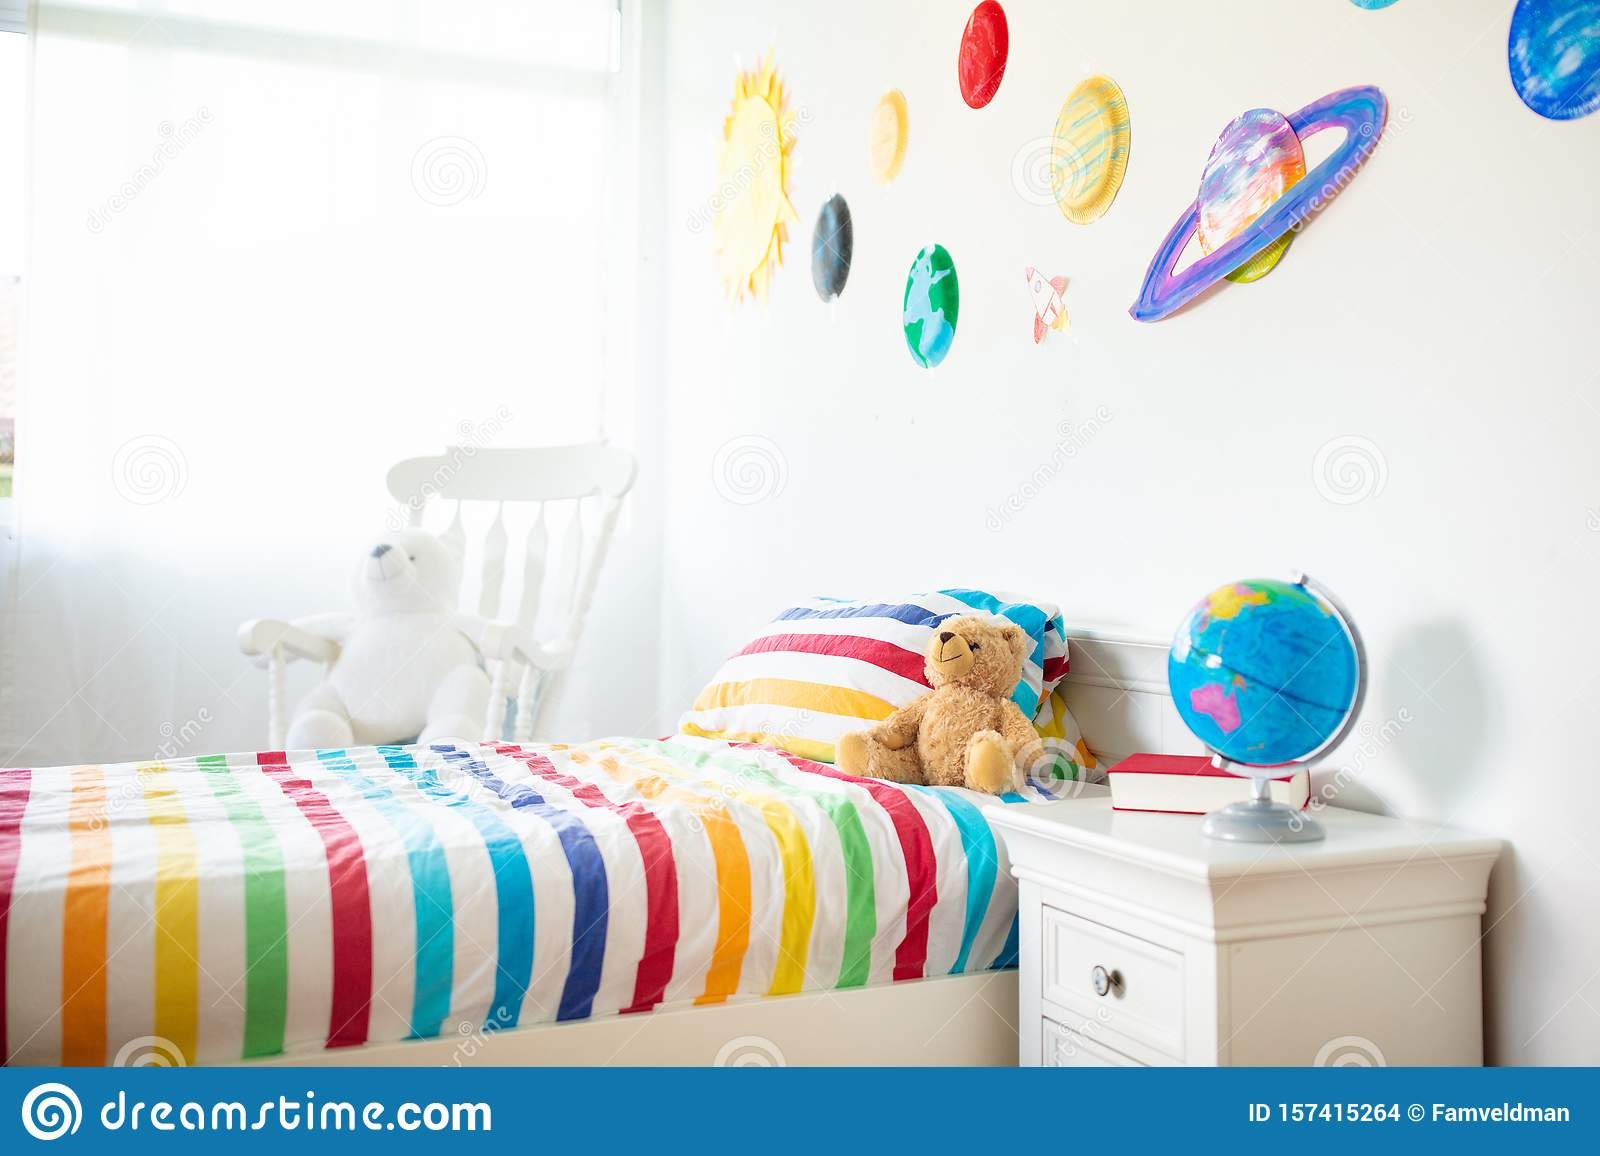 Kids Room With Space Decoration Child Bedroom Stock Photo Image Of Decor Blanket 157415264